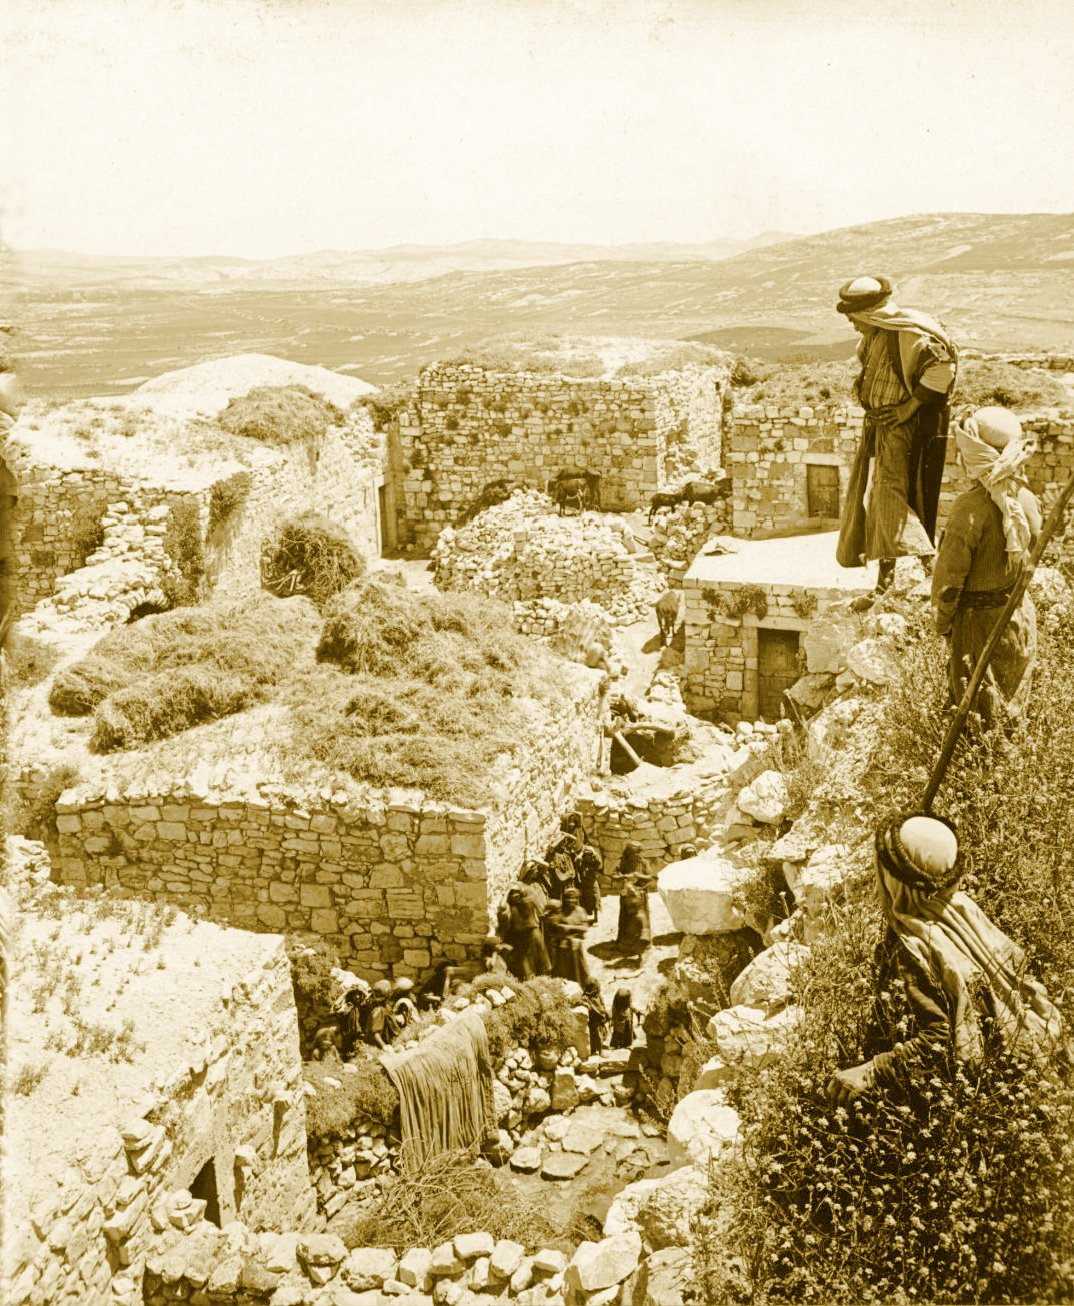 Ramallah - رام الله : RAMALLAH - Rooftop view, circa 1900s (Exact location not certain, Al-Ram, Beit Rima, Al-Bireh and Ramallah are possible contenders) - Keystone-Mast Collection (Per Reem Ackall)